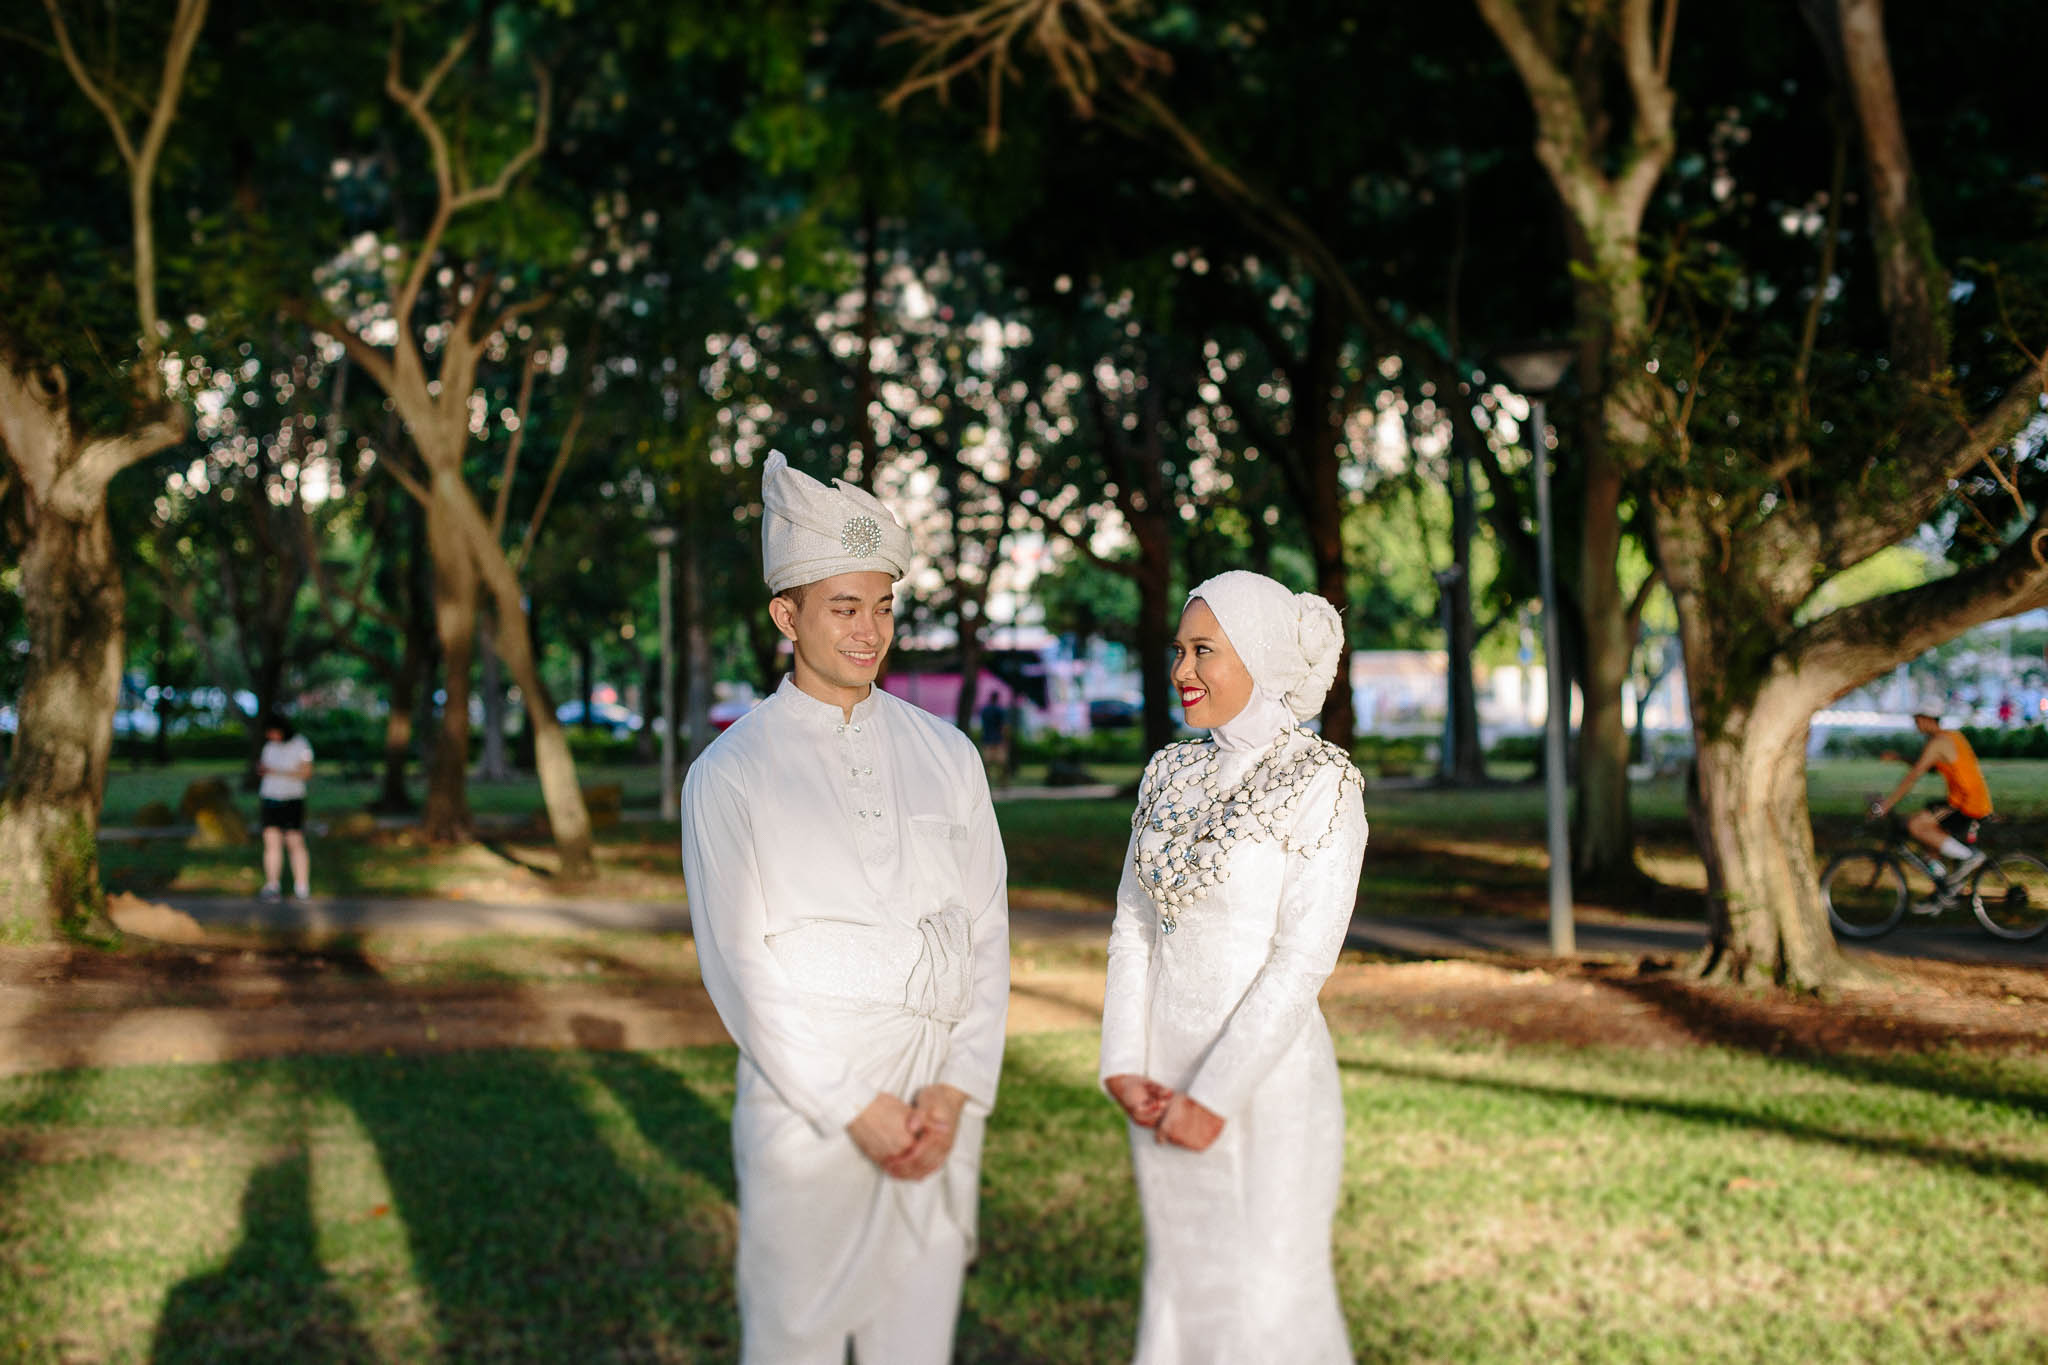 singapore-wedding-photographer-mega-asyraf-41.jpg